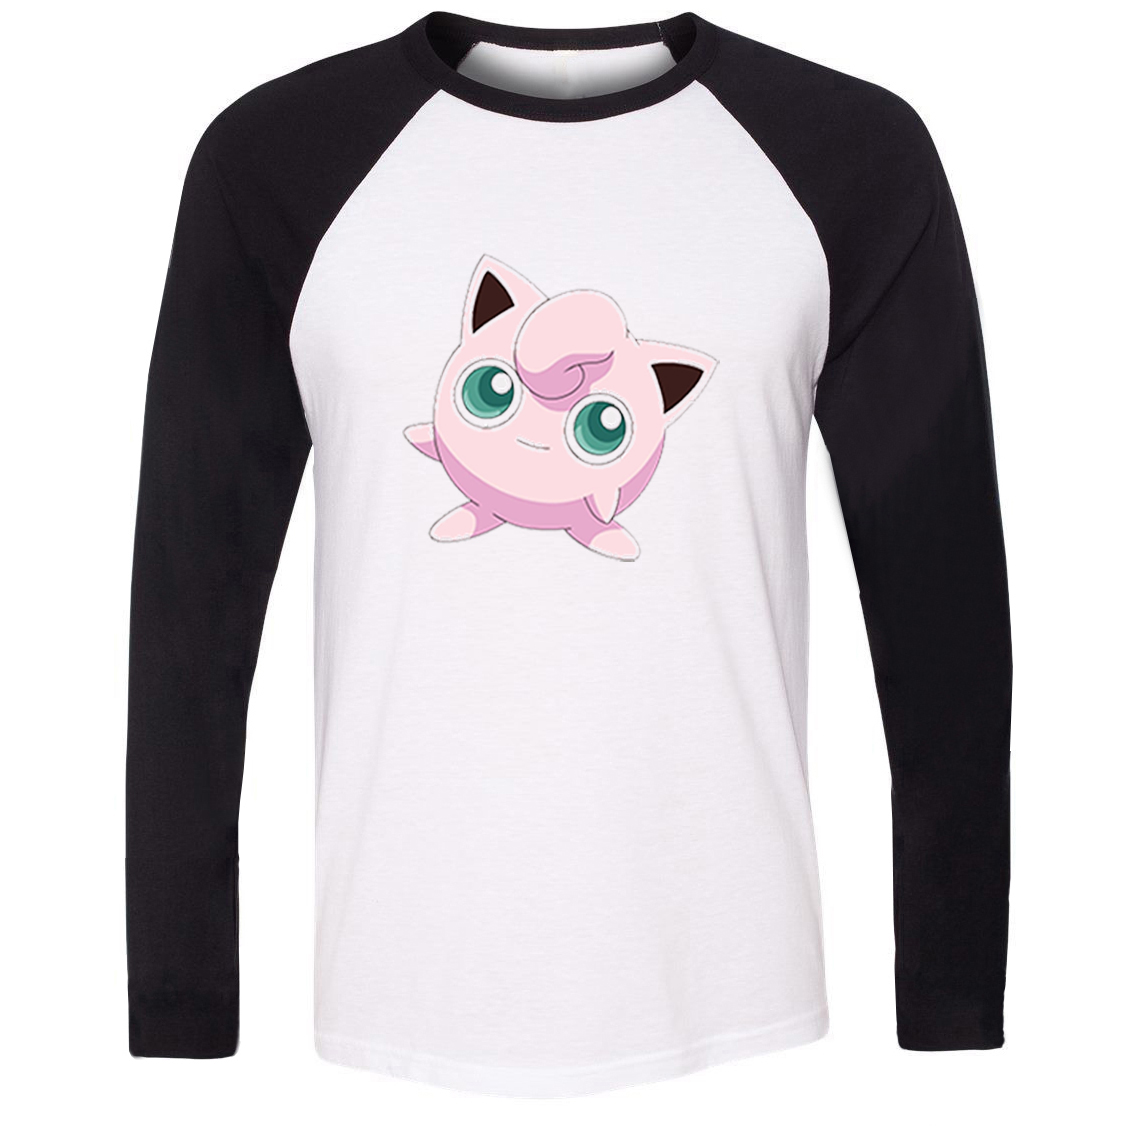 48e177e7 Unisex T shirt Pokemon National Pokedex 039 Normal Fairy Type Jigglypuff  Pattern Raglan Long Sleeve Men T shirt Casual Tee Tops-in T-Shirts from  Men's ...